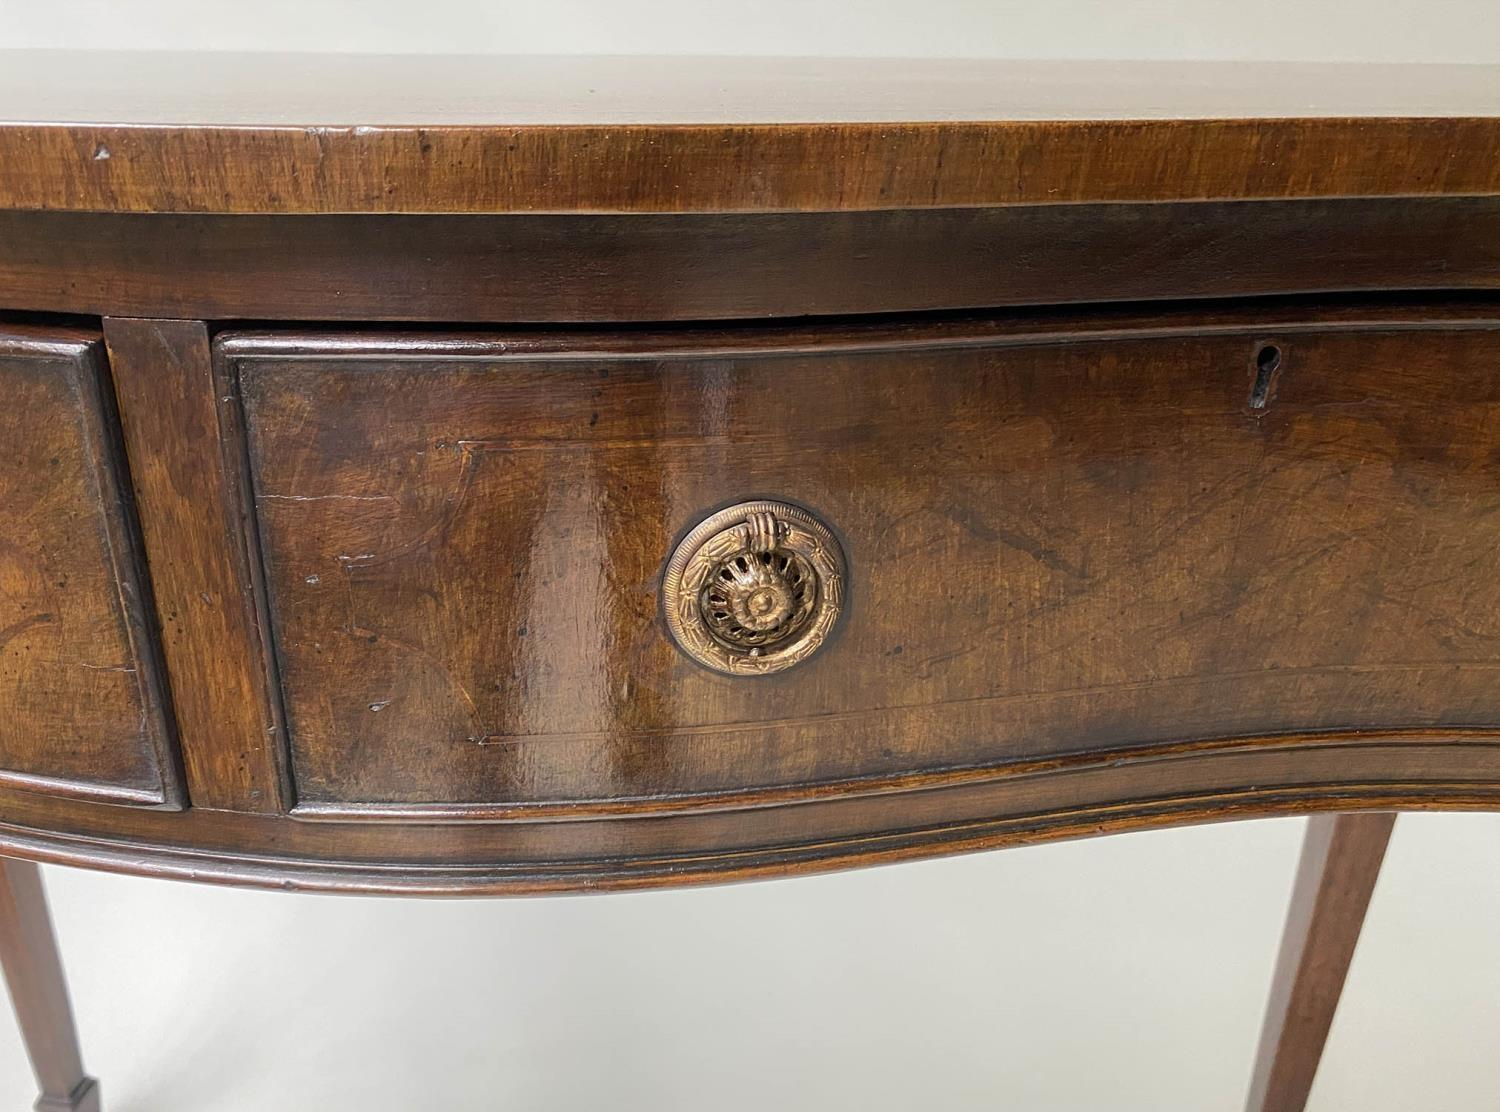 HALL TABLE, George III style figured mahogany and brass inlaid of serpentine outline with two frieze - Image 7 of 9